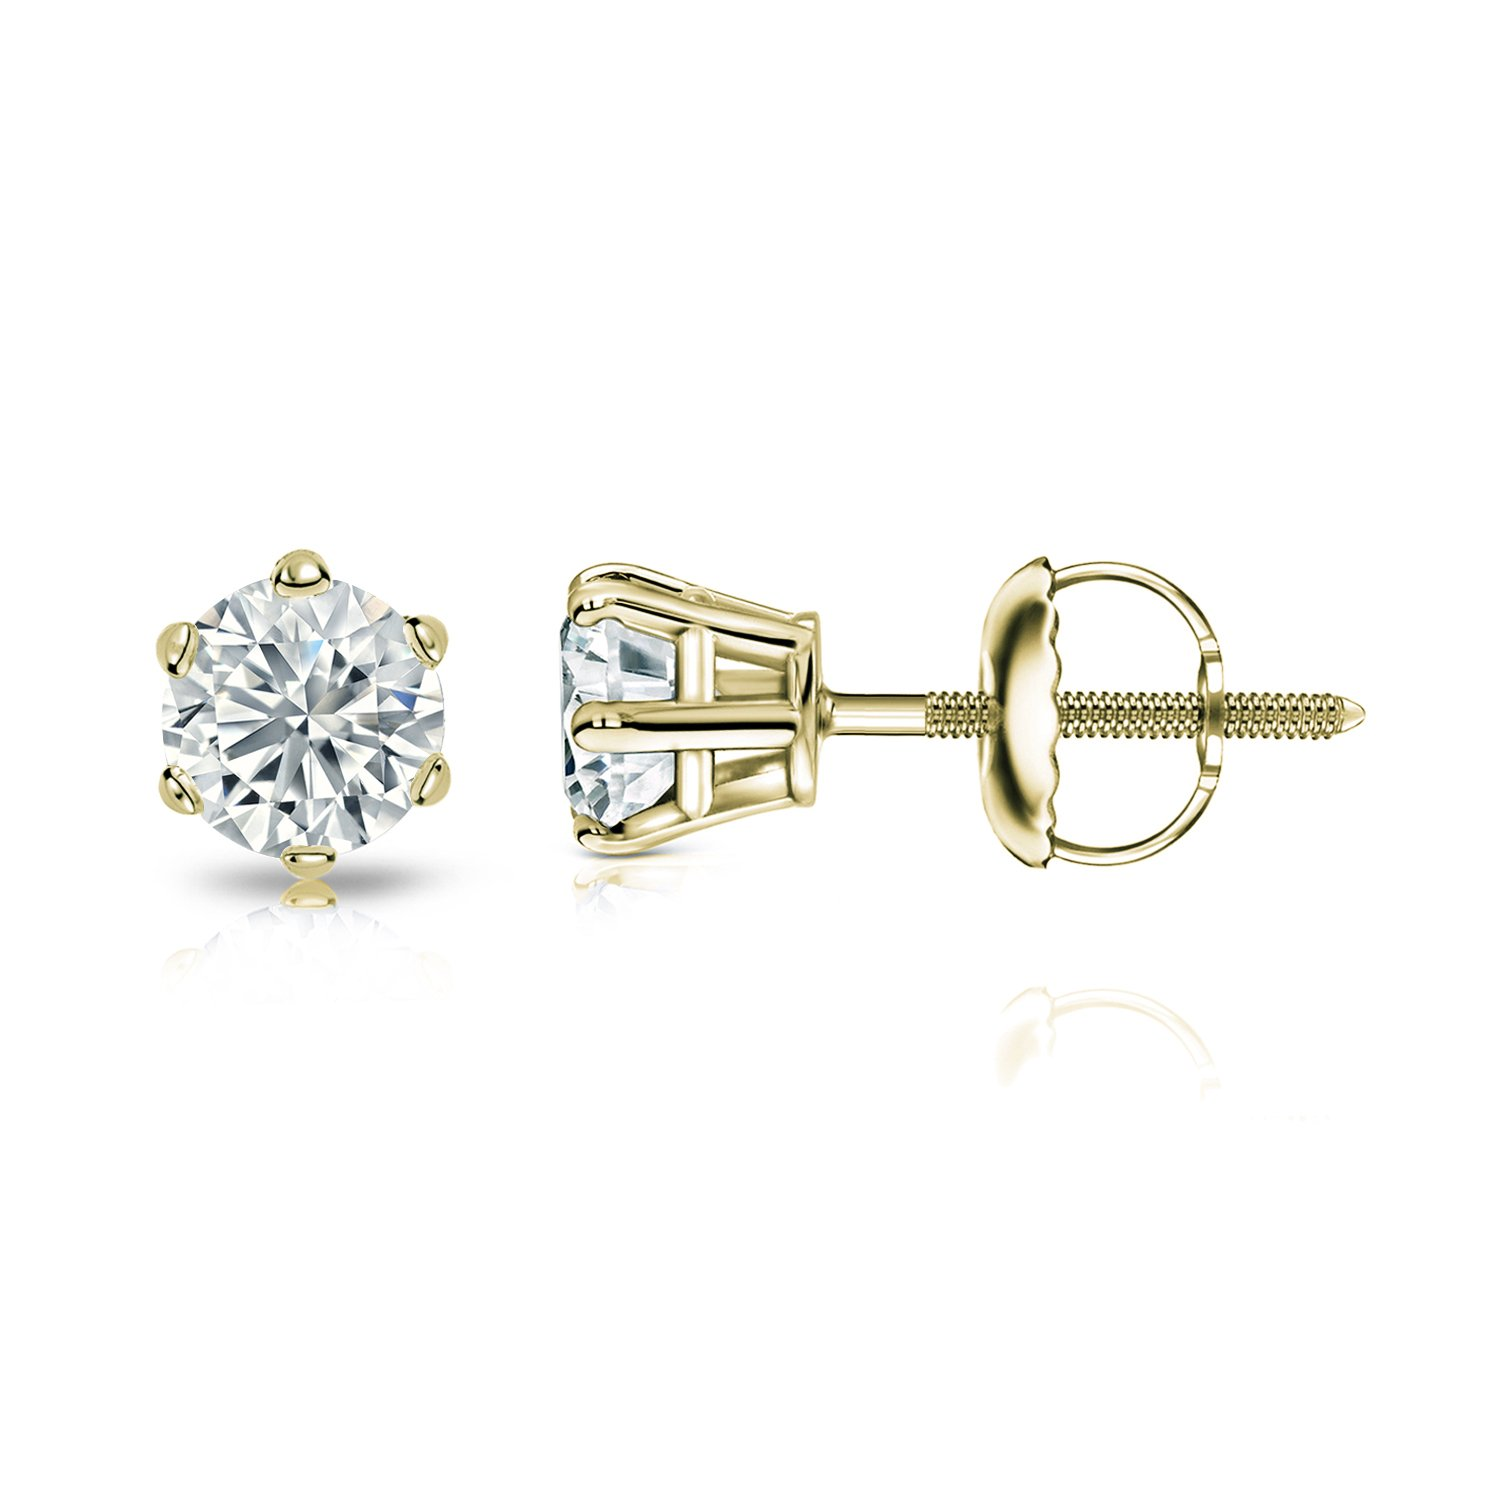 1//2-2cttw,Excellent Quality 14k Yellow Gold Mens Round Diamond Simulant CZ Stud Earrings 6-Prong